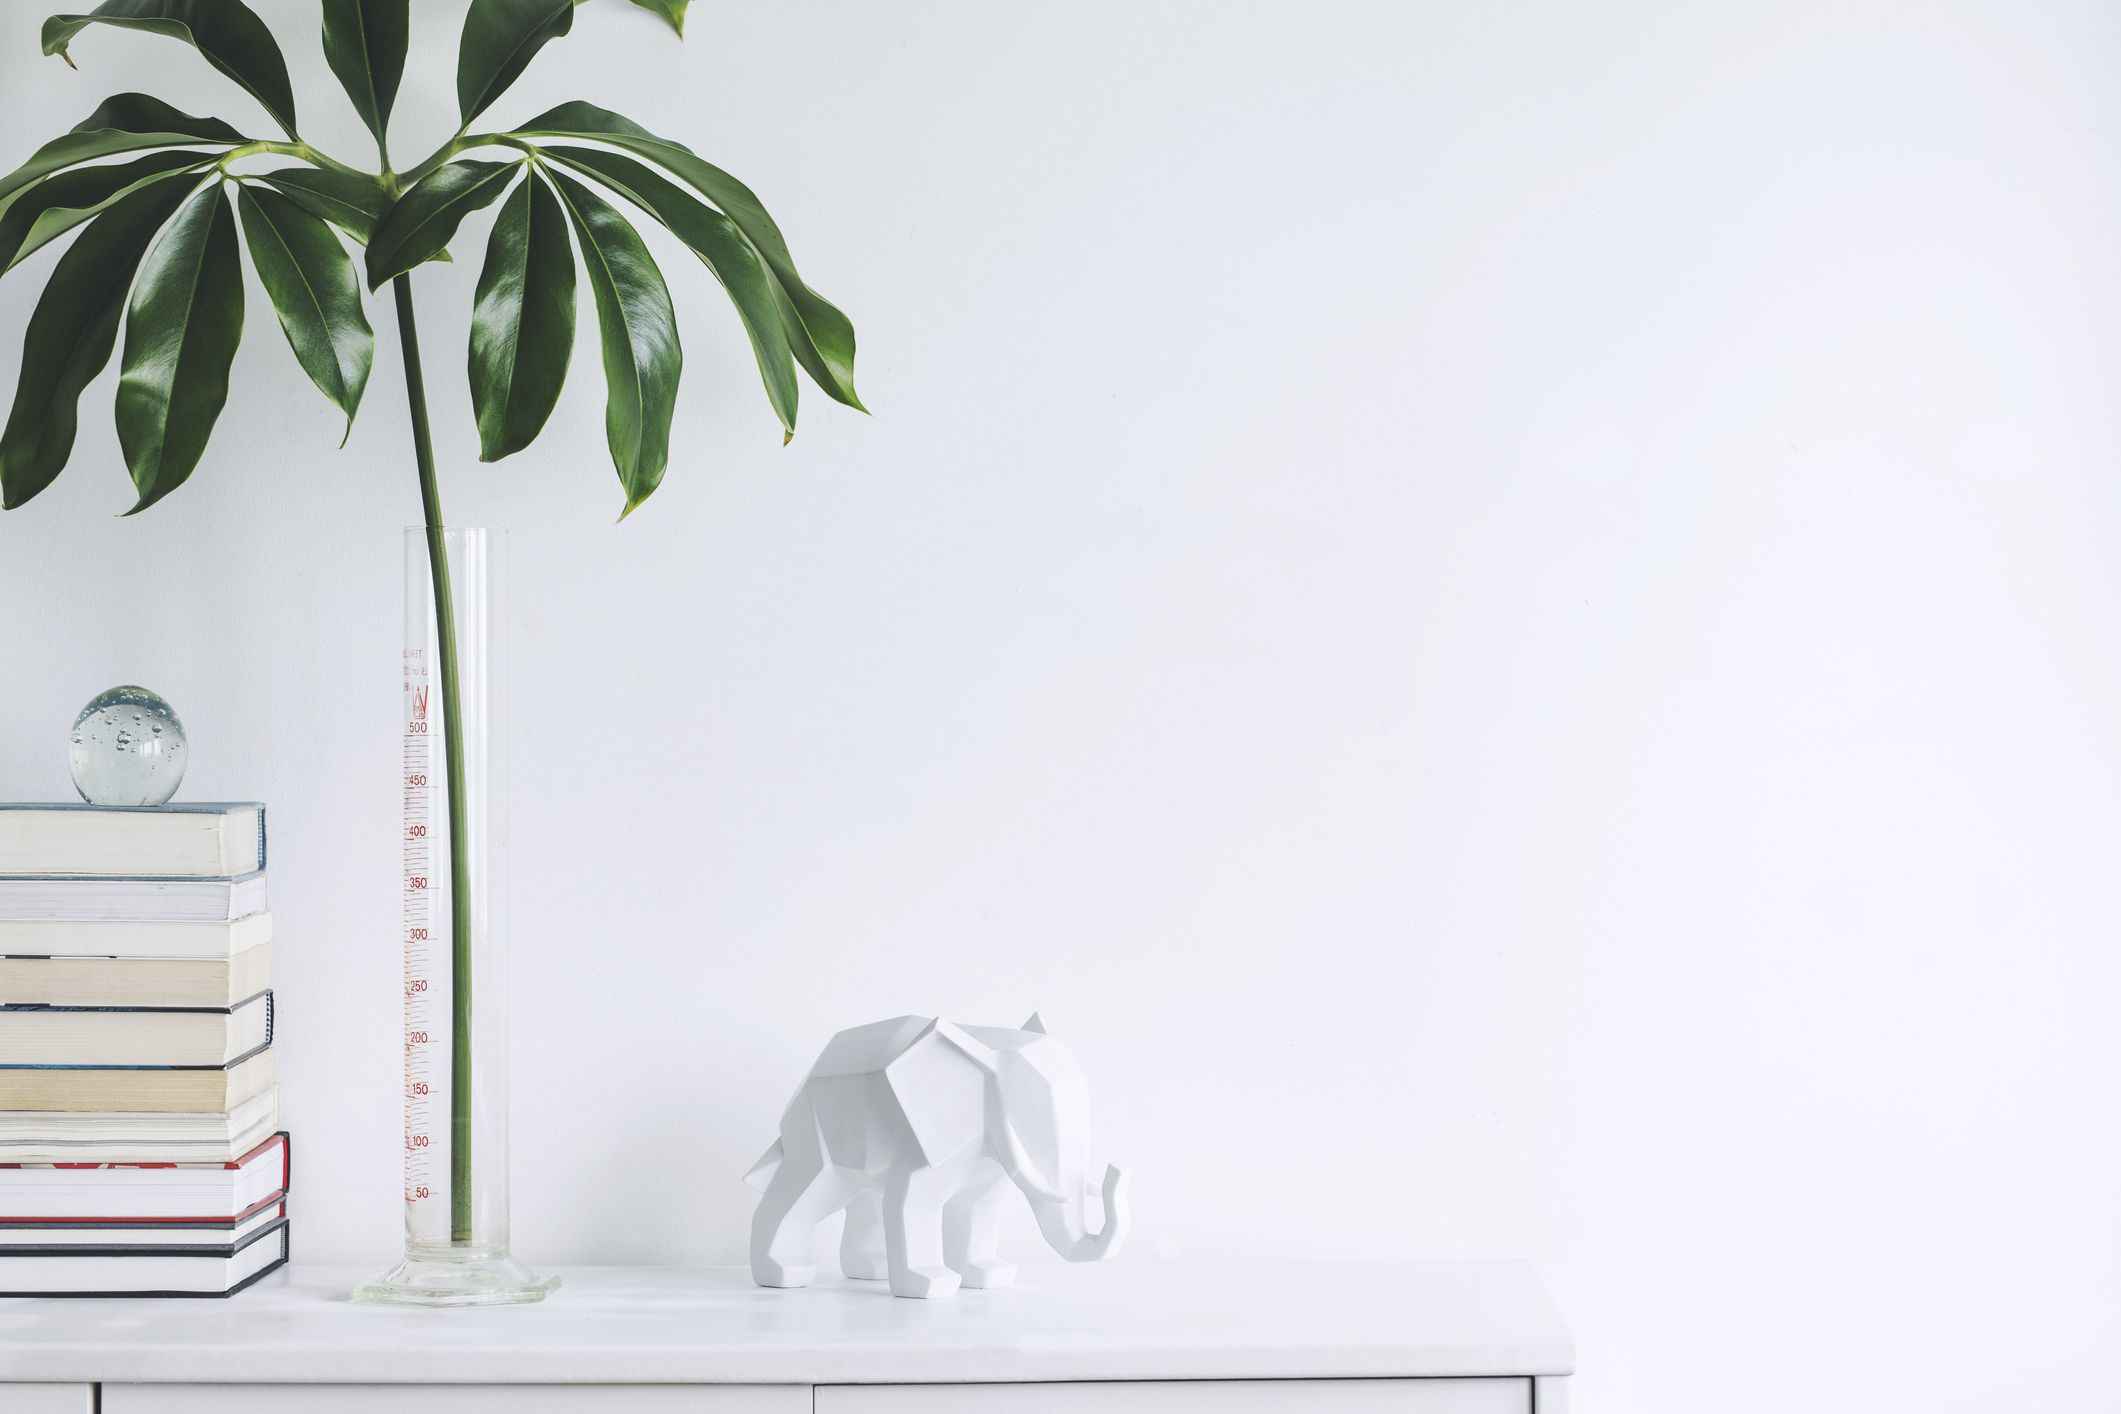 The white stylish interior with copy space, tropical leafs, white elephant figure and books on the shelf. Modern composition of white space